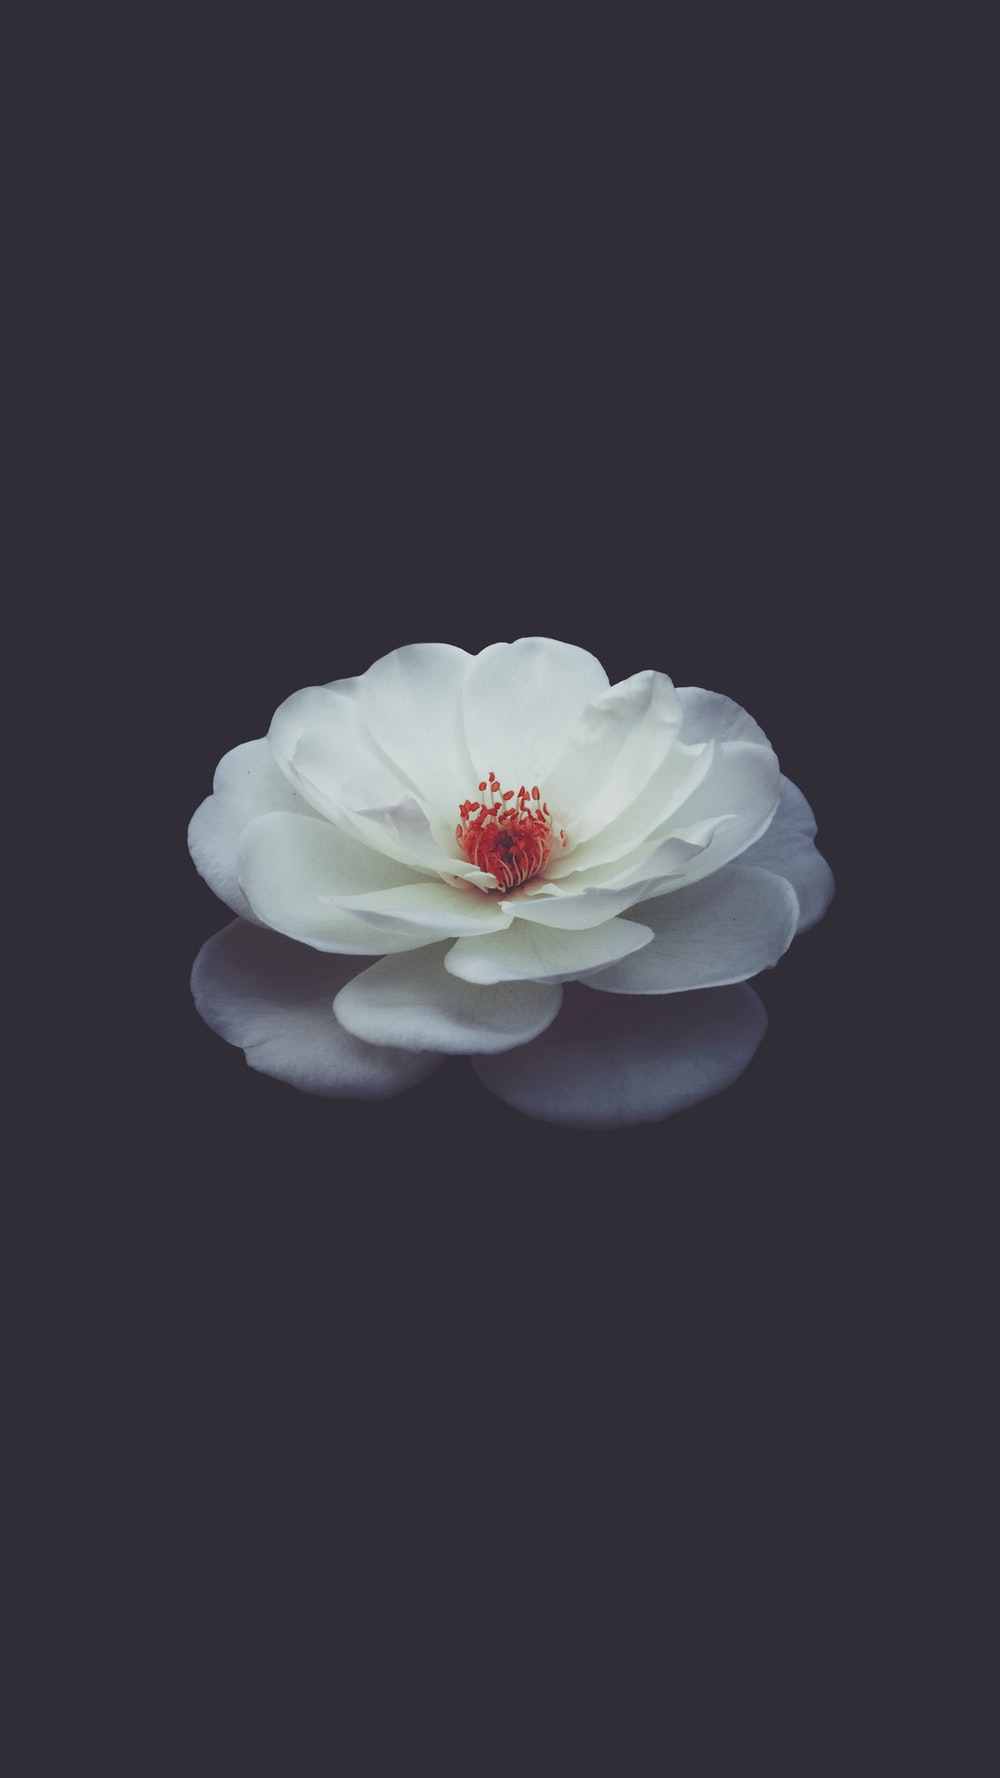 Flowers with black background free download 100 best free shallow focus photography of white petaled flower in water mightylinksfo